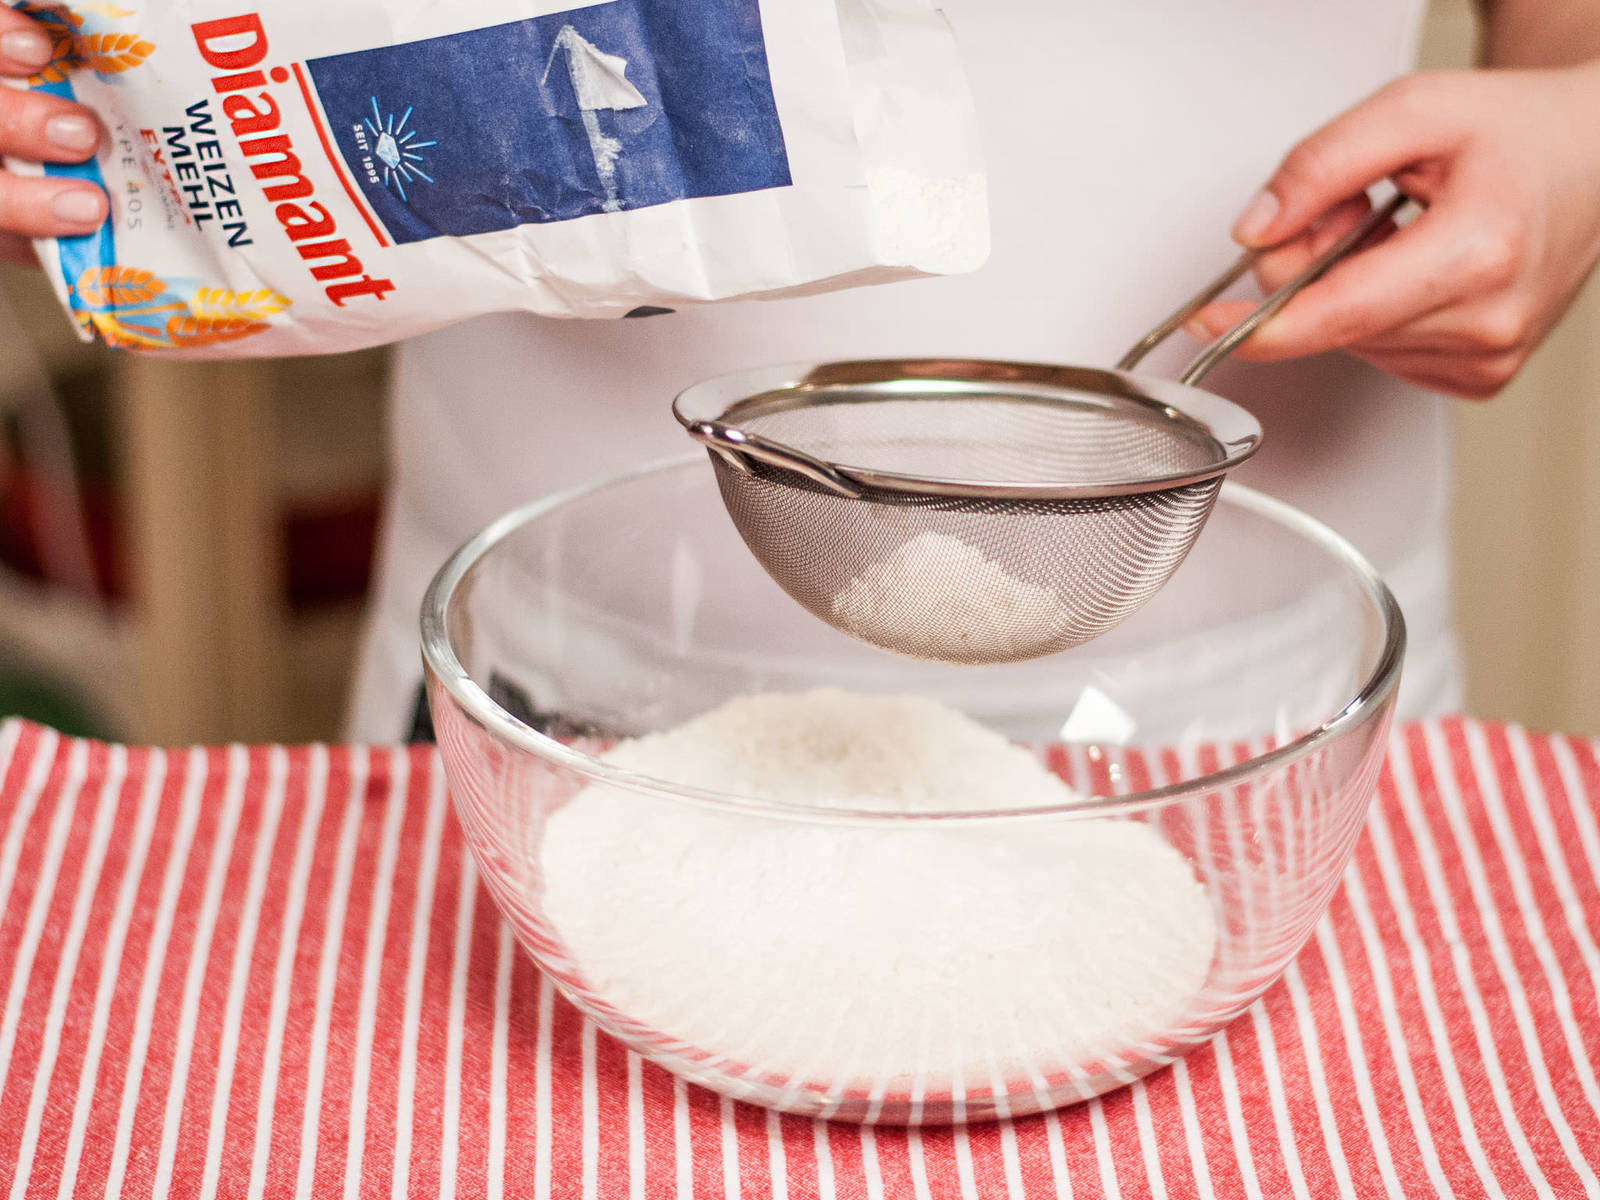 Sift flour, baking powder, and salt into separate bowl. Add to butter mixture and whisk until a smooth dough forms.